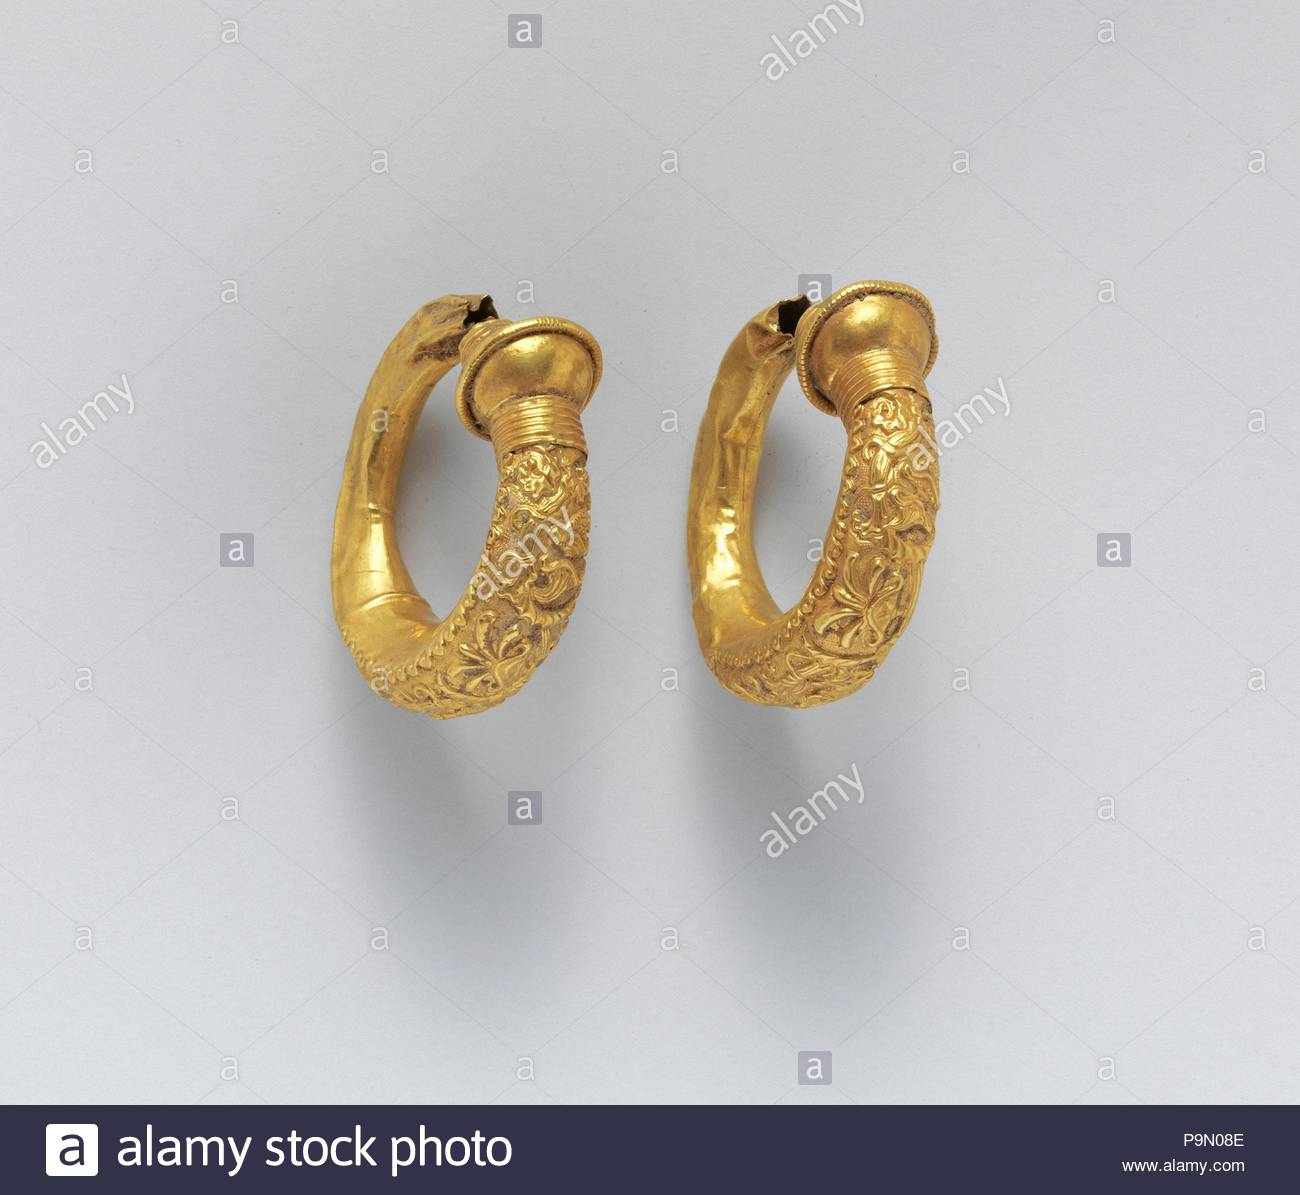 Gold trumpet-shaped earrings with relief decoration, Classical, 5th–4th century B.C., Etruscan, gold, Diam.: 1 1/2 in. (3.8 cm)(both), Gold and Silver, Decorated in floral repoussé patterns of palmettes and acanthus leaves. - Stock Image